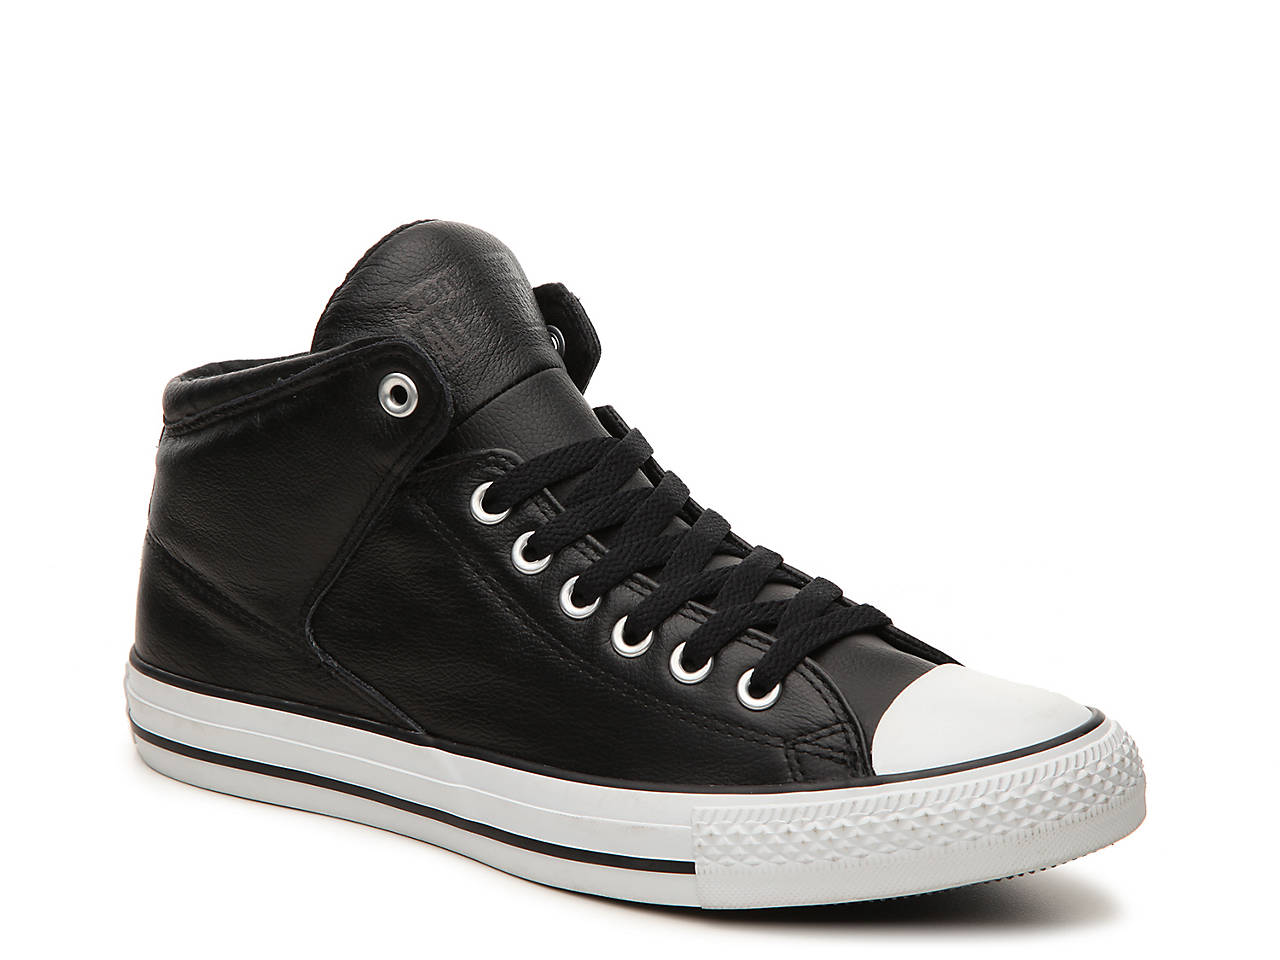 Men's Converse Chuck Taylor ... All Star Leather High Top Shoes N1rv7kE